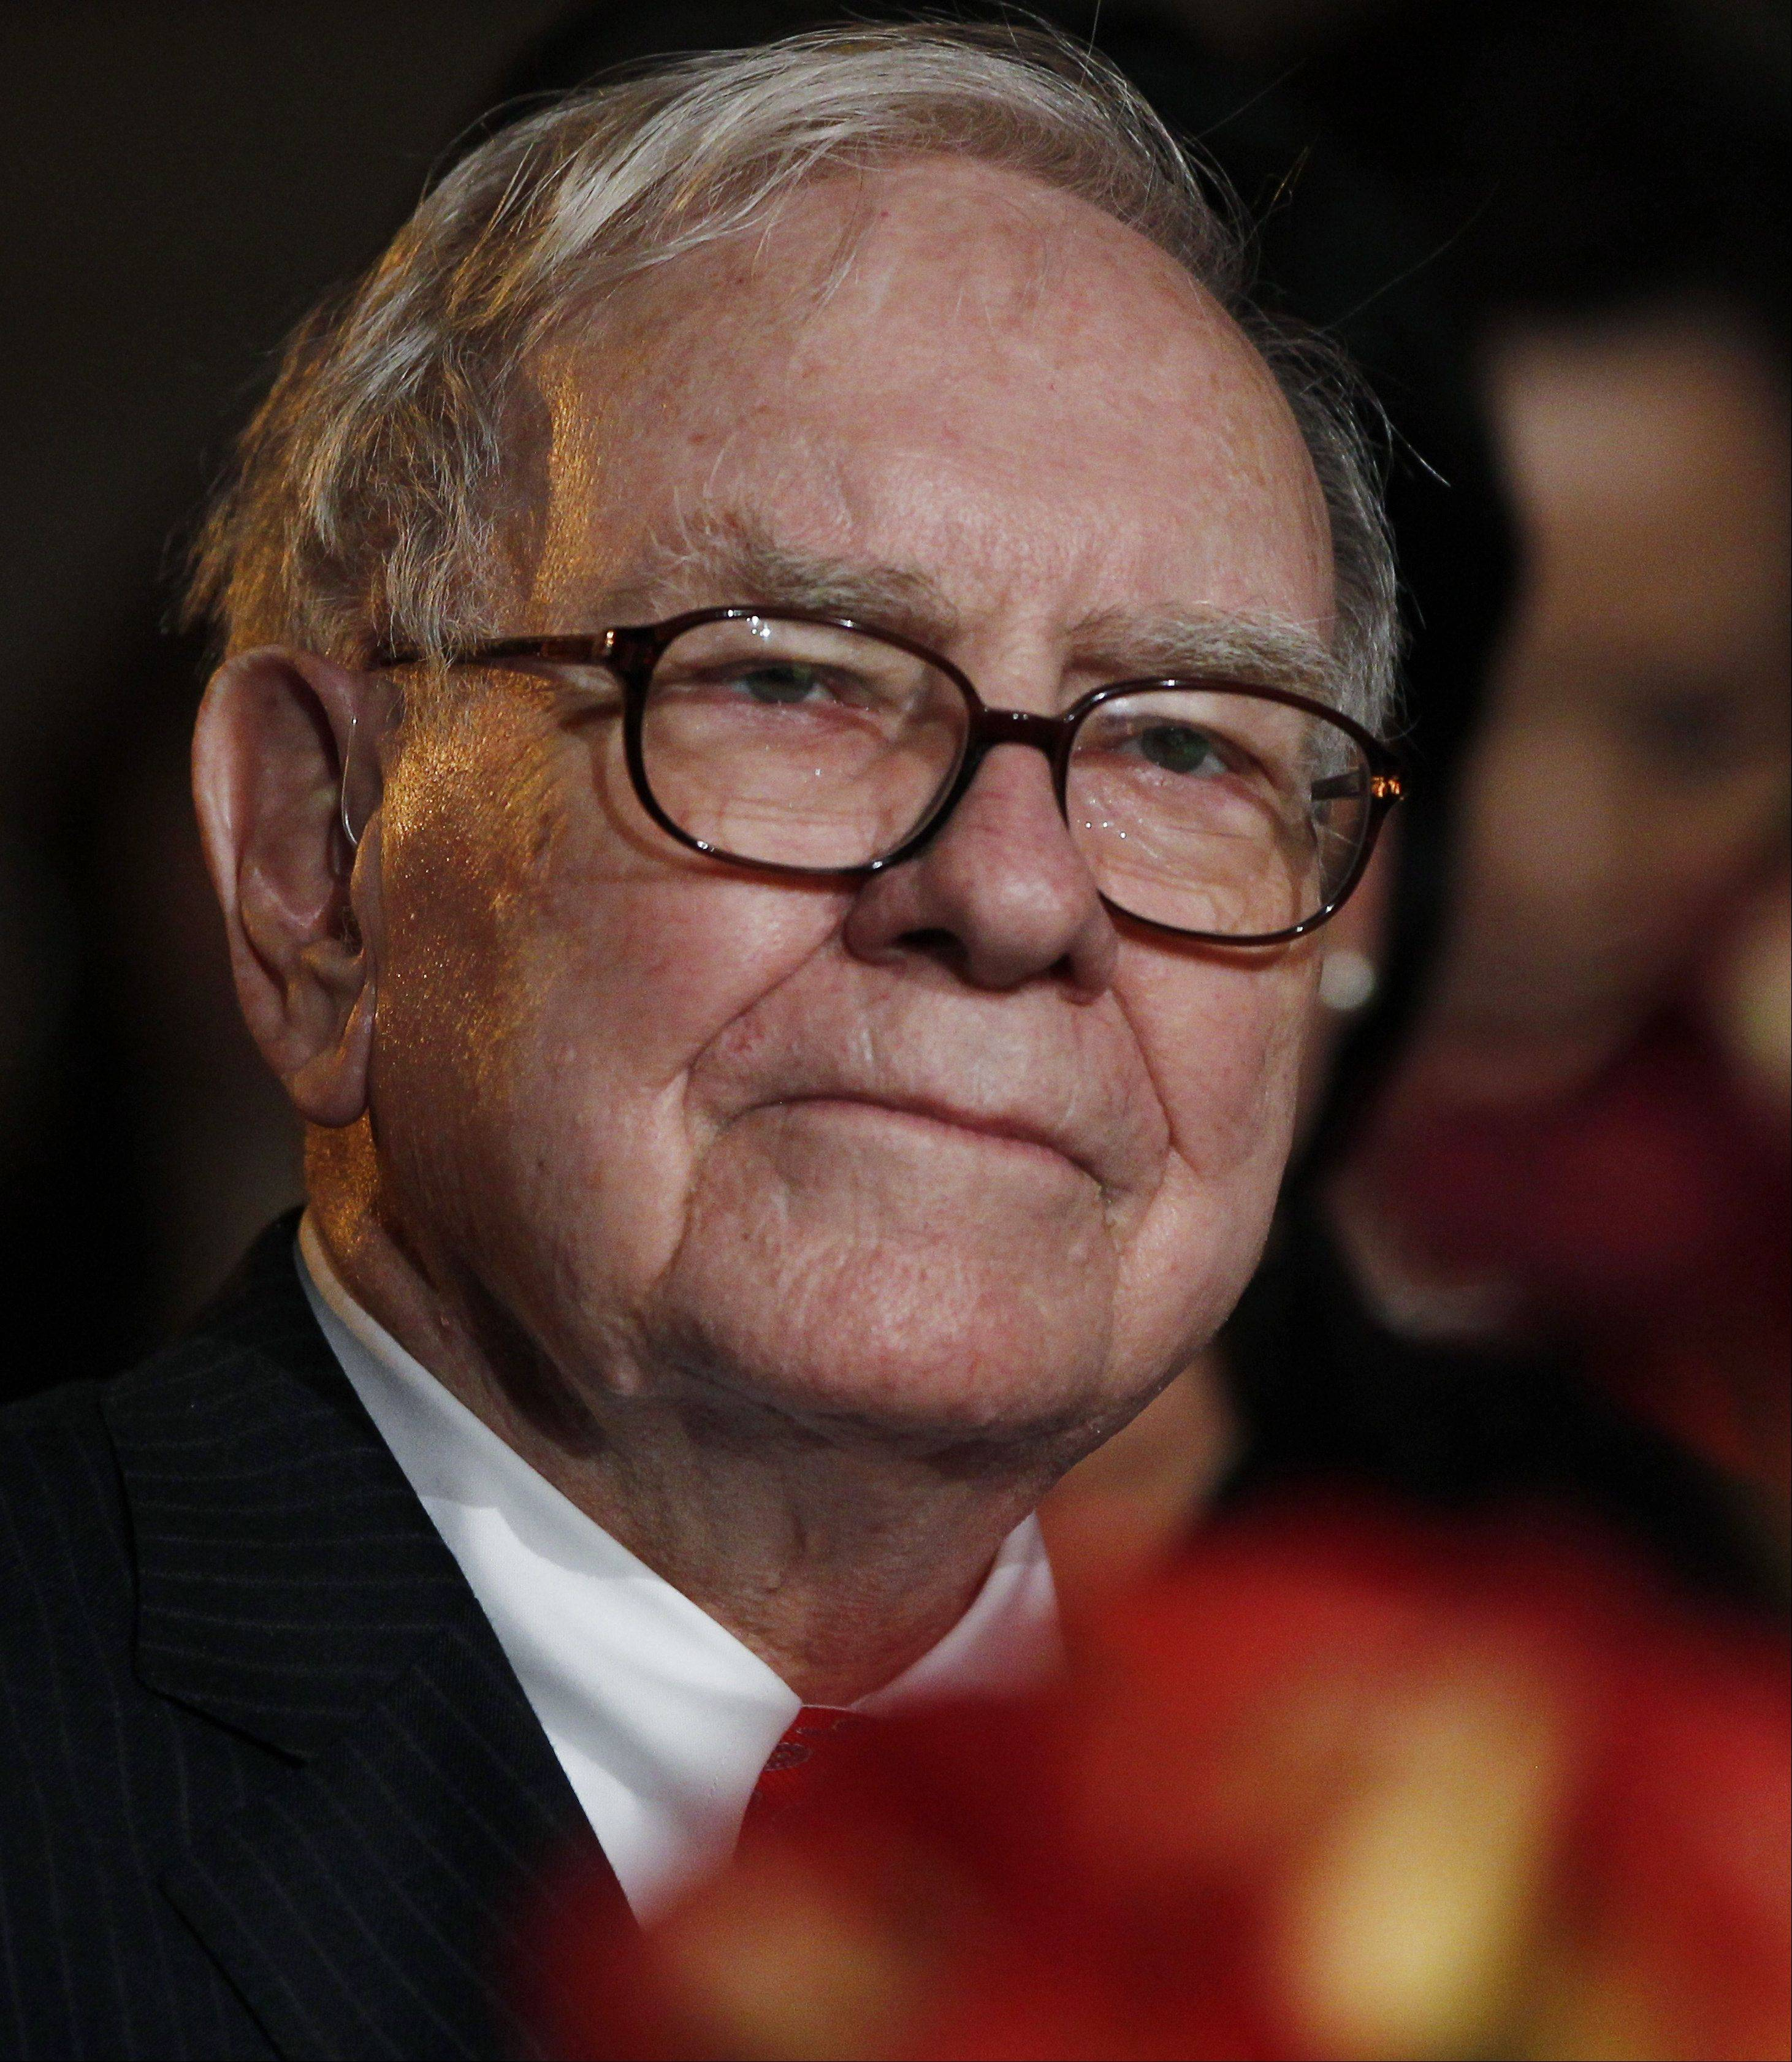 Warren Buffett, CEO, Berkshire Hathaway, parent of BH Media Group